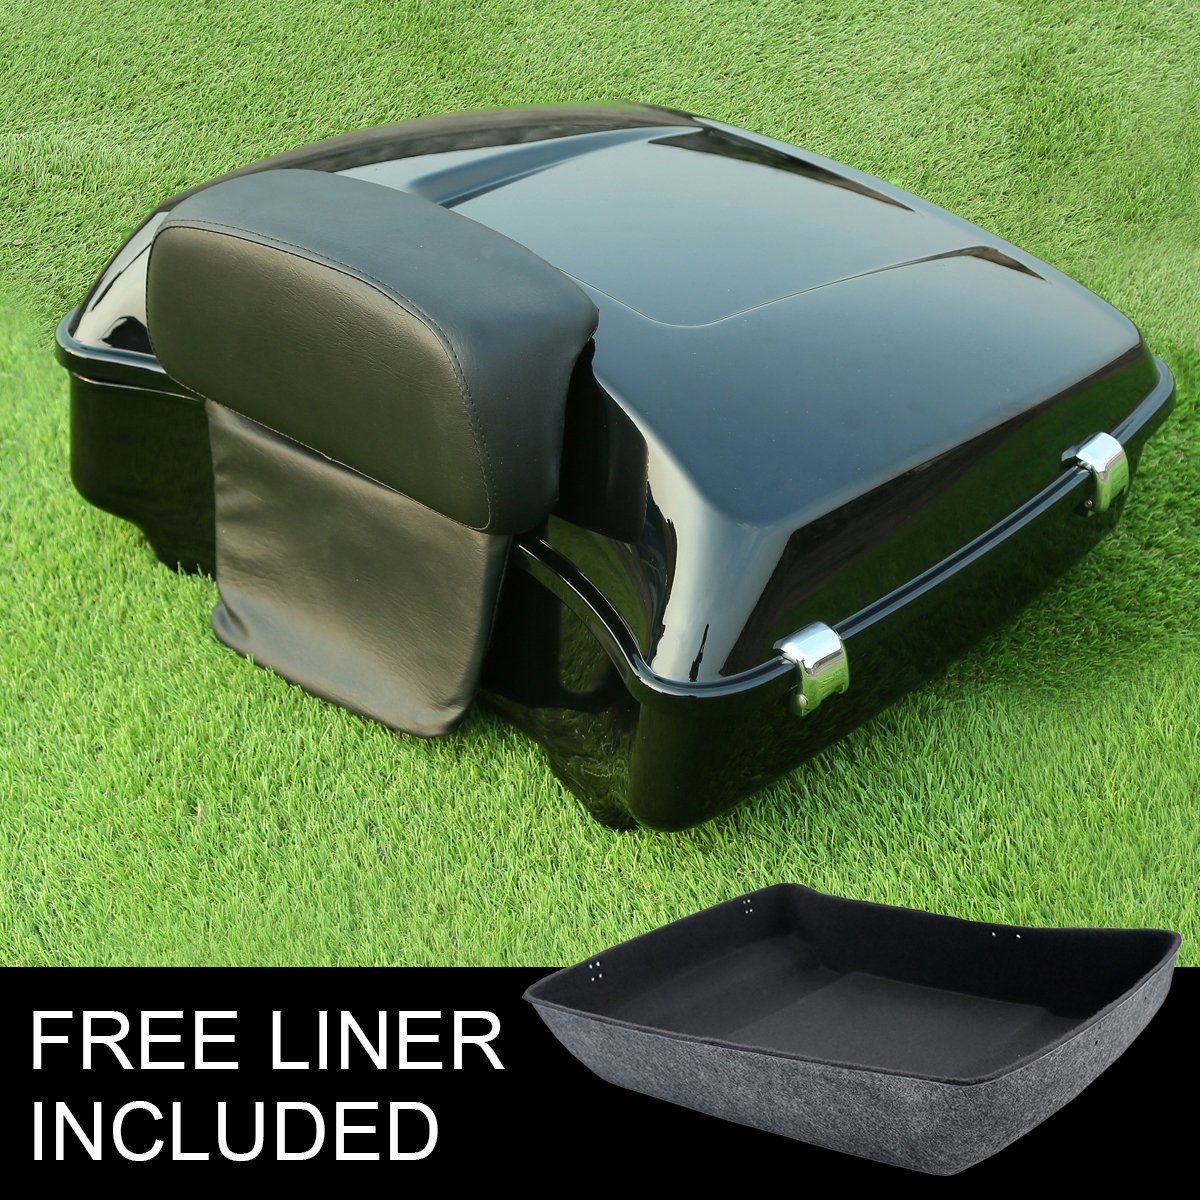 XMT-MOTO Chopped Tour Pak Trunk Backrest Pad For For Harley Davidson Touring 2014 2015 2016 2017 2018